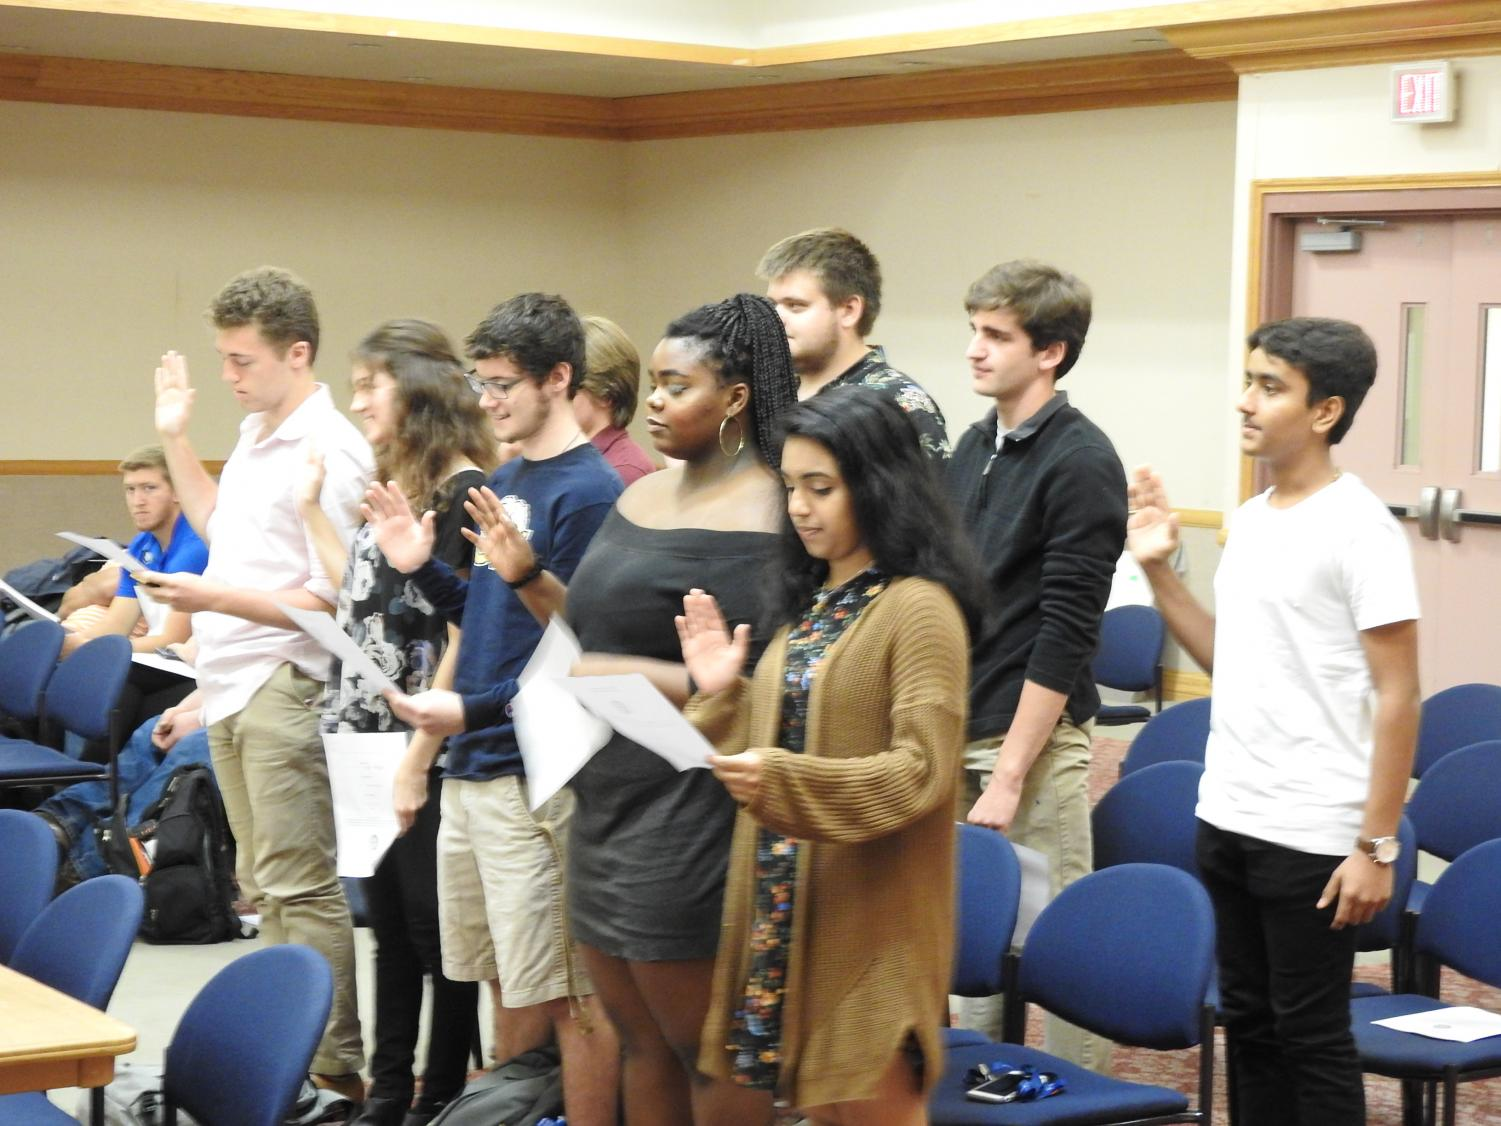 Nine freshmen senators were sworn into student government committees at a Sept. 17 student government meeting after having been elected by Pitt-Johnstown students services.